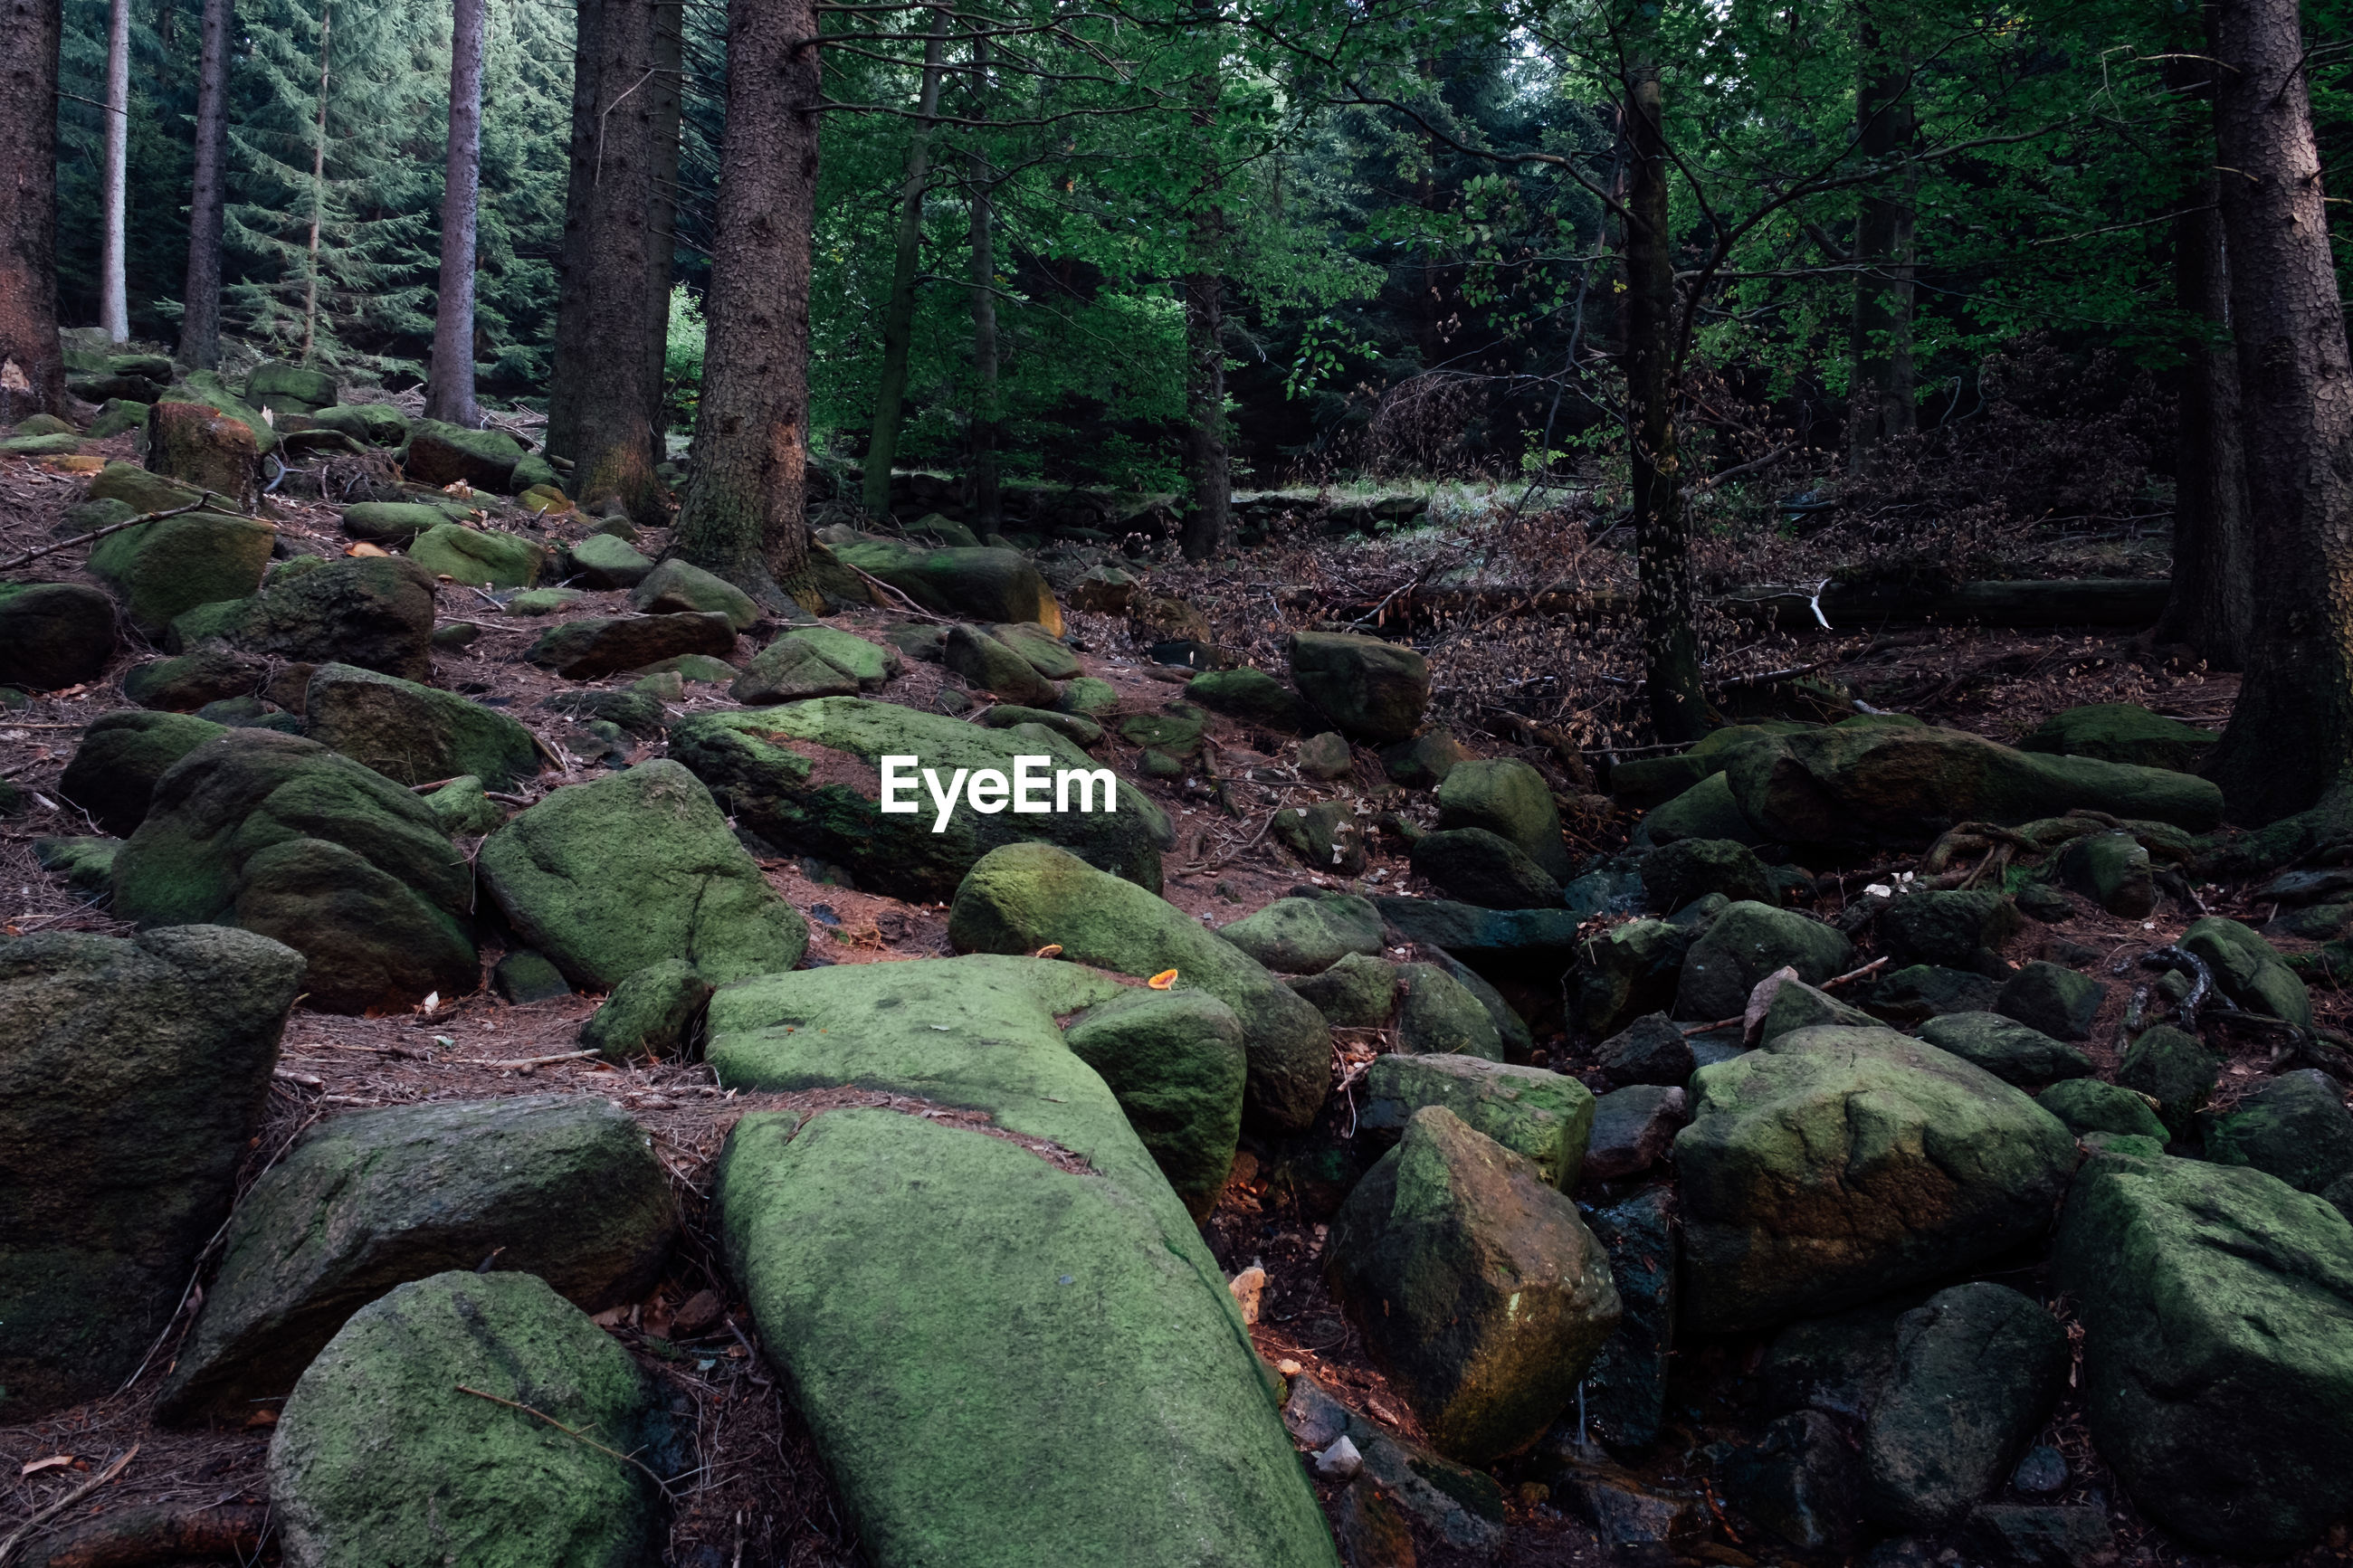 PLANTS GROWING BY ROCKS IN FOREST